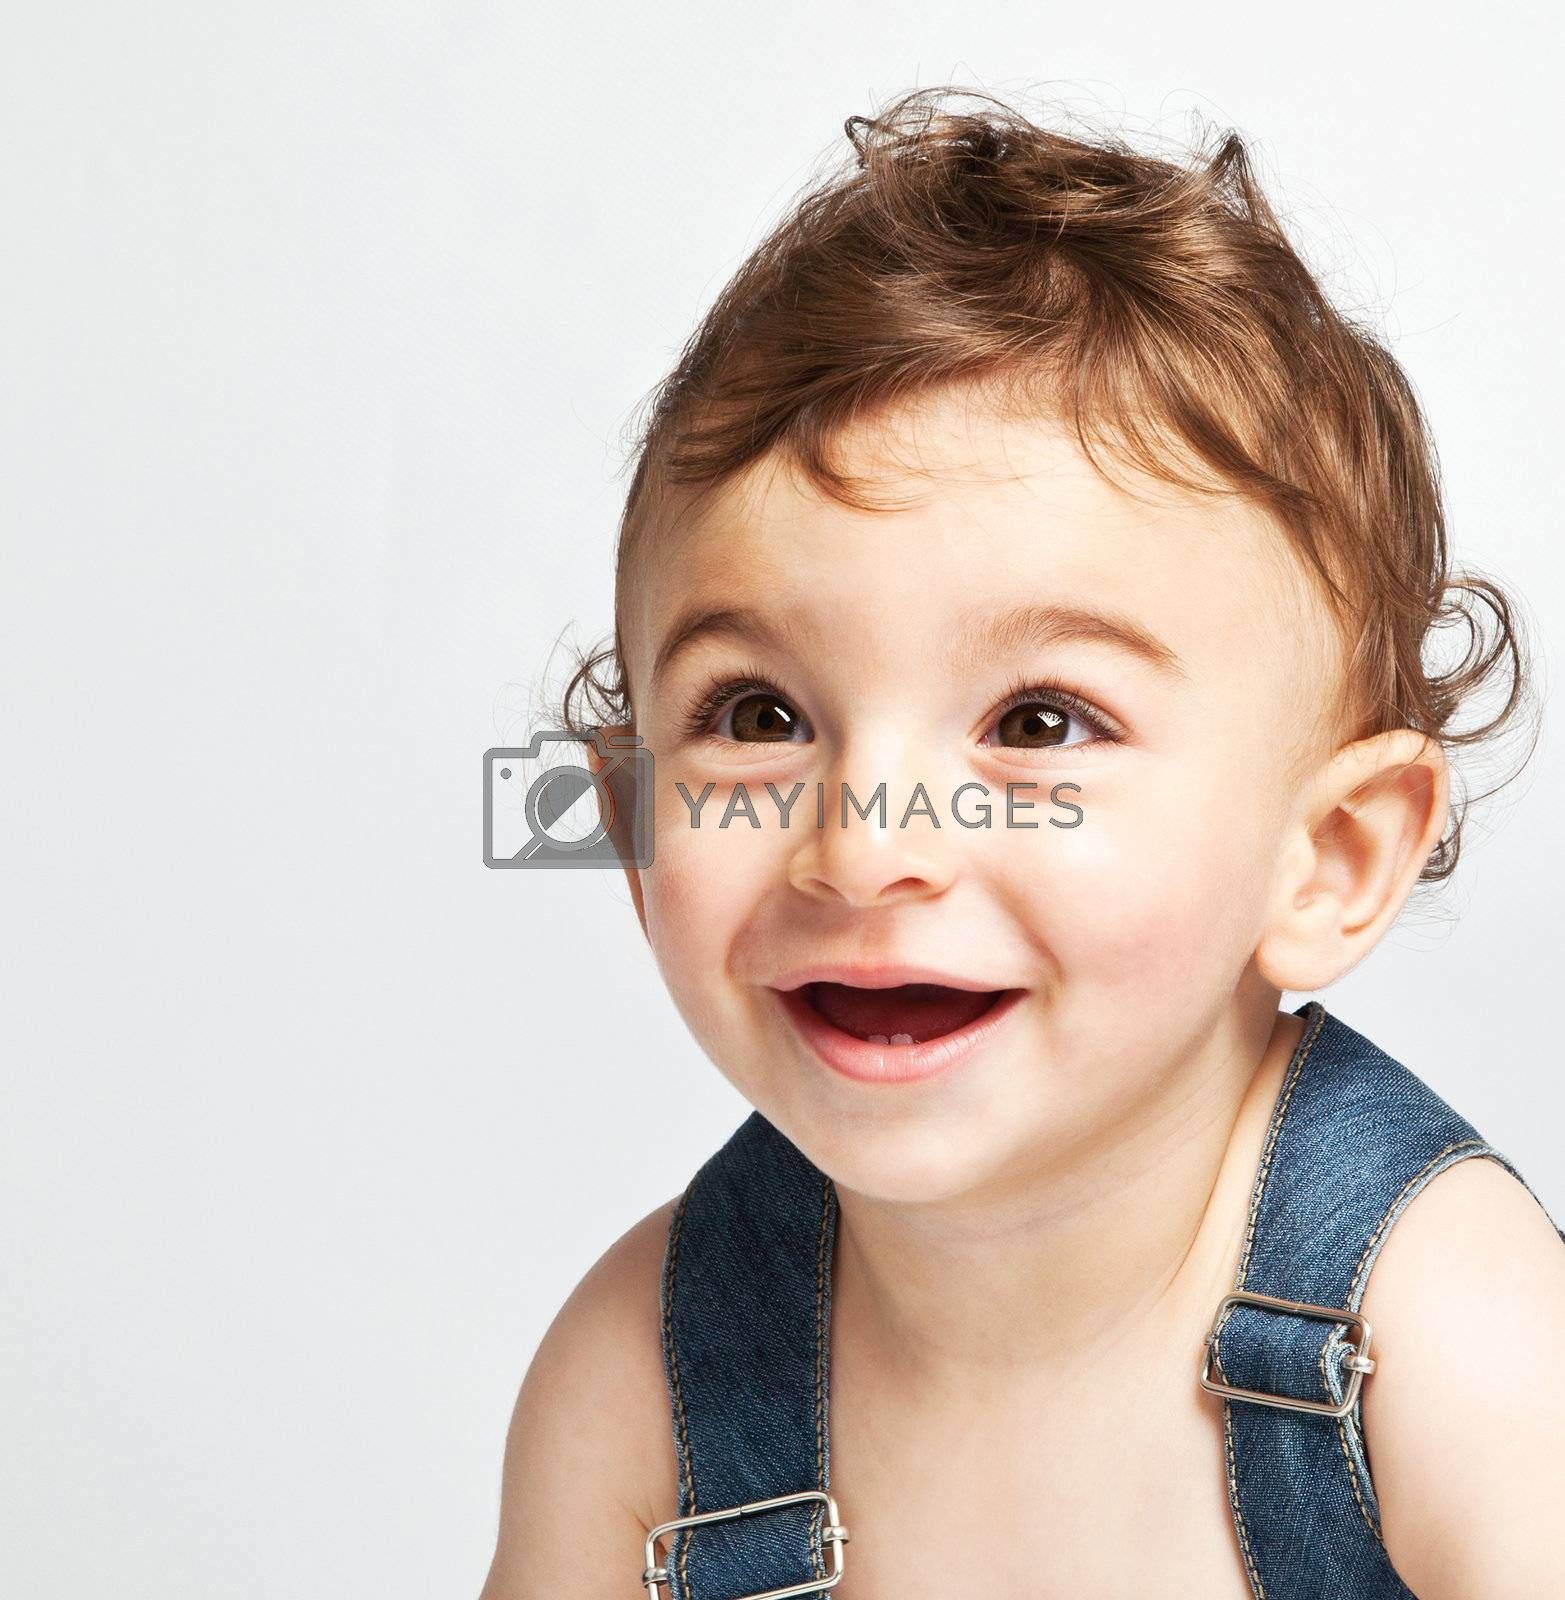 Cute baby boy isolated on white background, portrait of adorable sweet child, cheerful nice kid laughing indoor, pretty curious infant looking ahead, healthy lifestyle, happy childhood concept